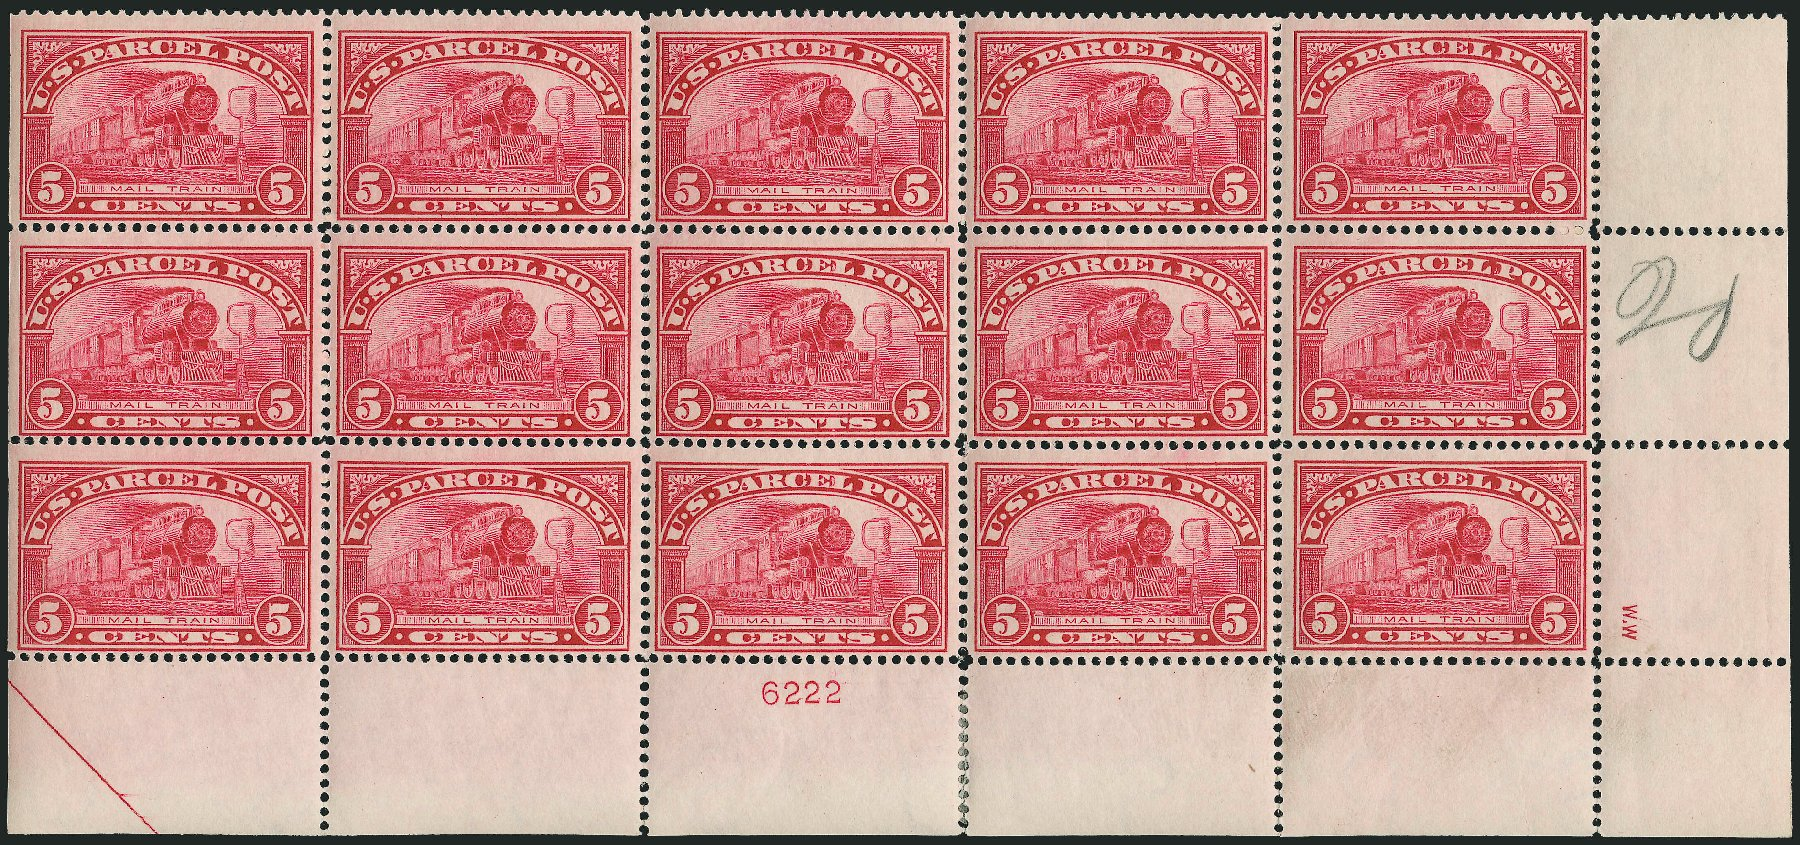 US Stamps Value Scott Cat. # Q5: 5c 1913 Parcel Post. Robert Siegel Auction Galleries, Mar 2015, Sale 1094, Lot 281